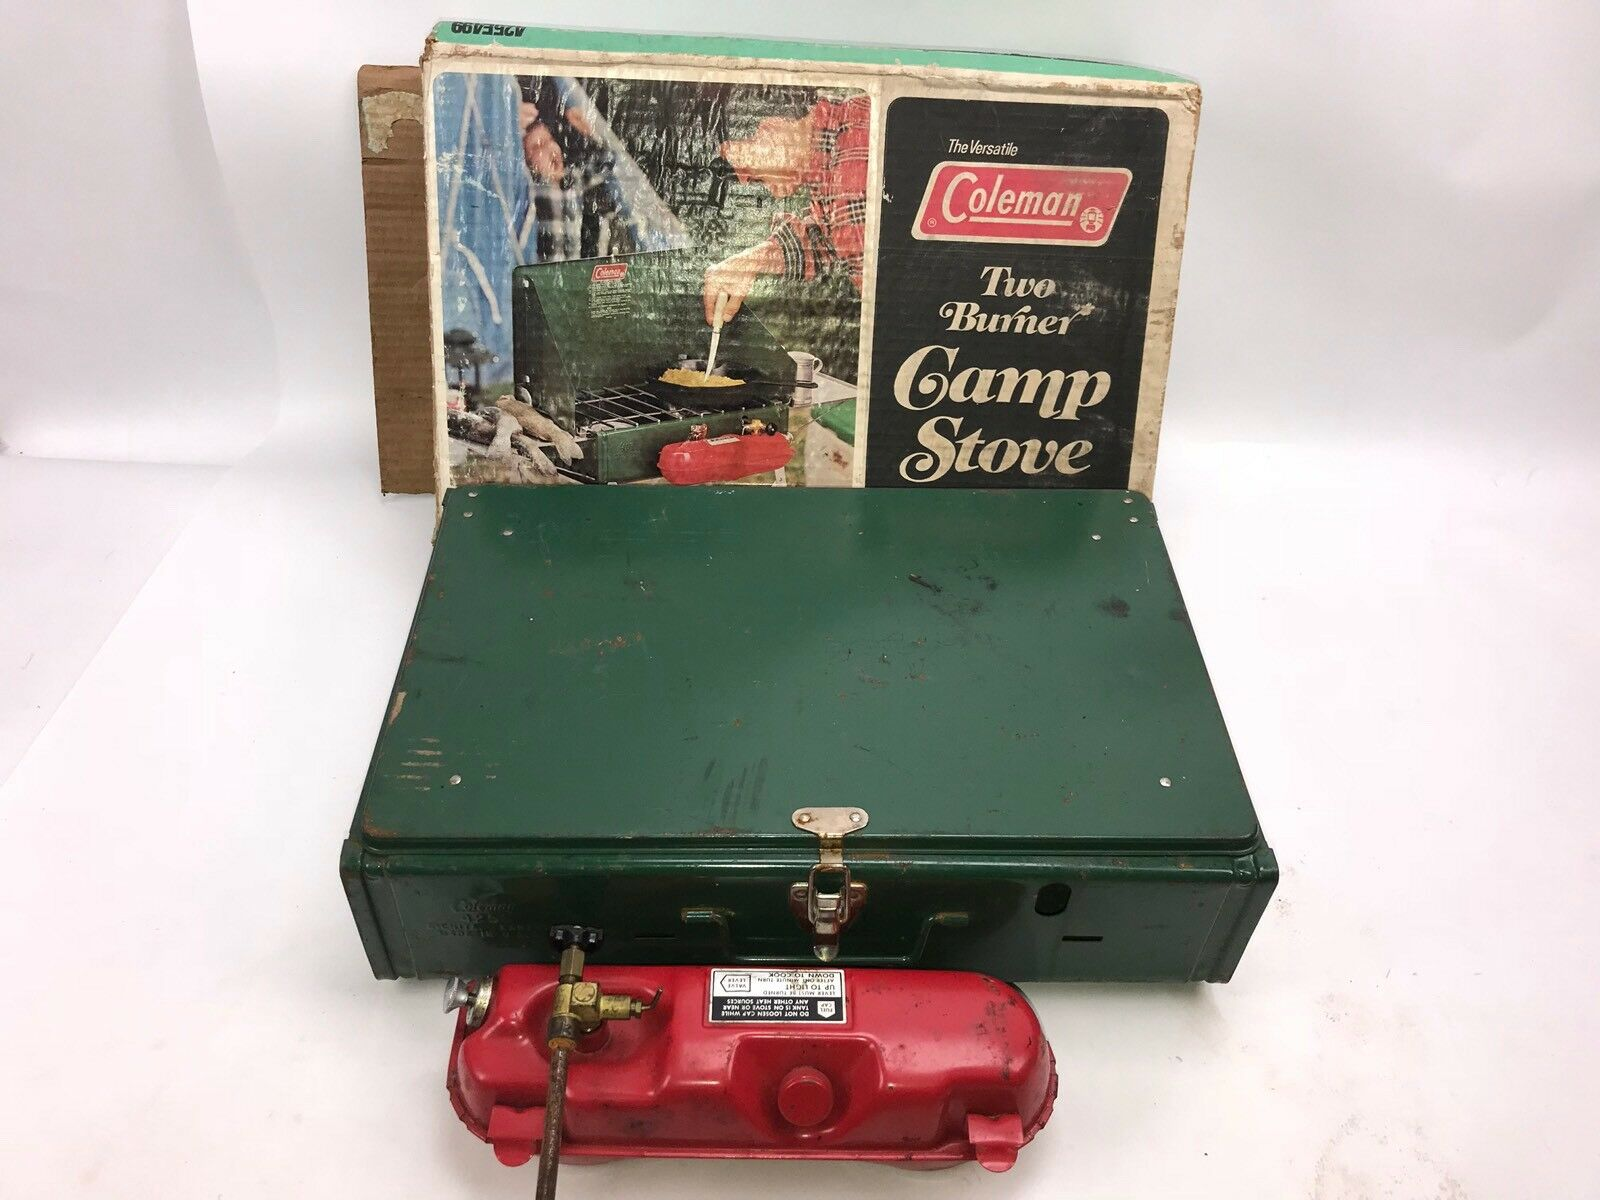 VINTAGE 1978 COLEMAN 425E CAMP STOVE with BOX TWO BURNER